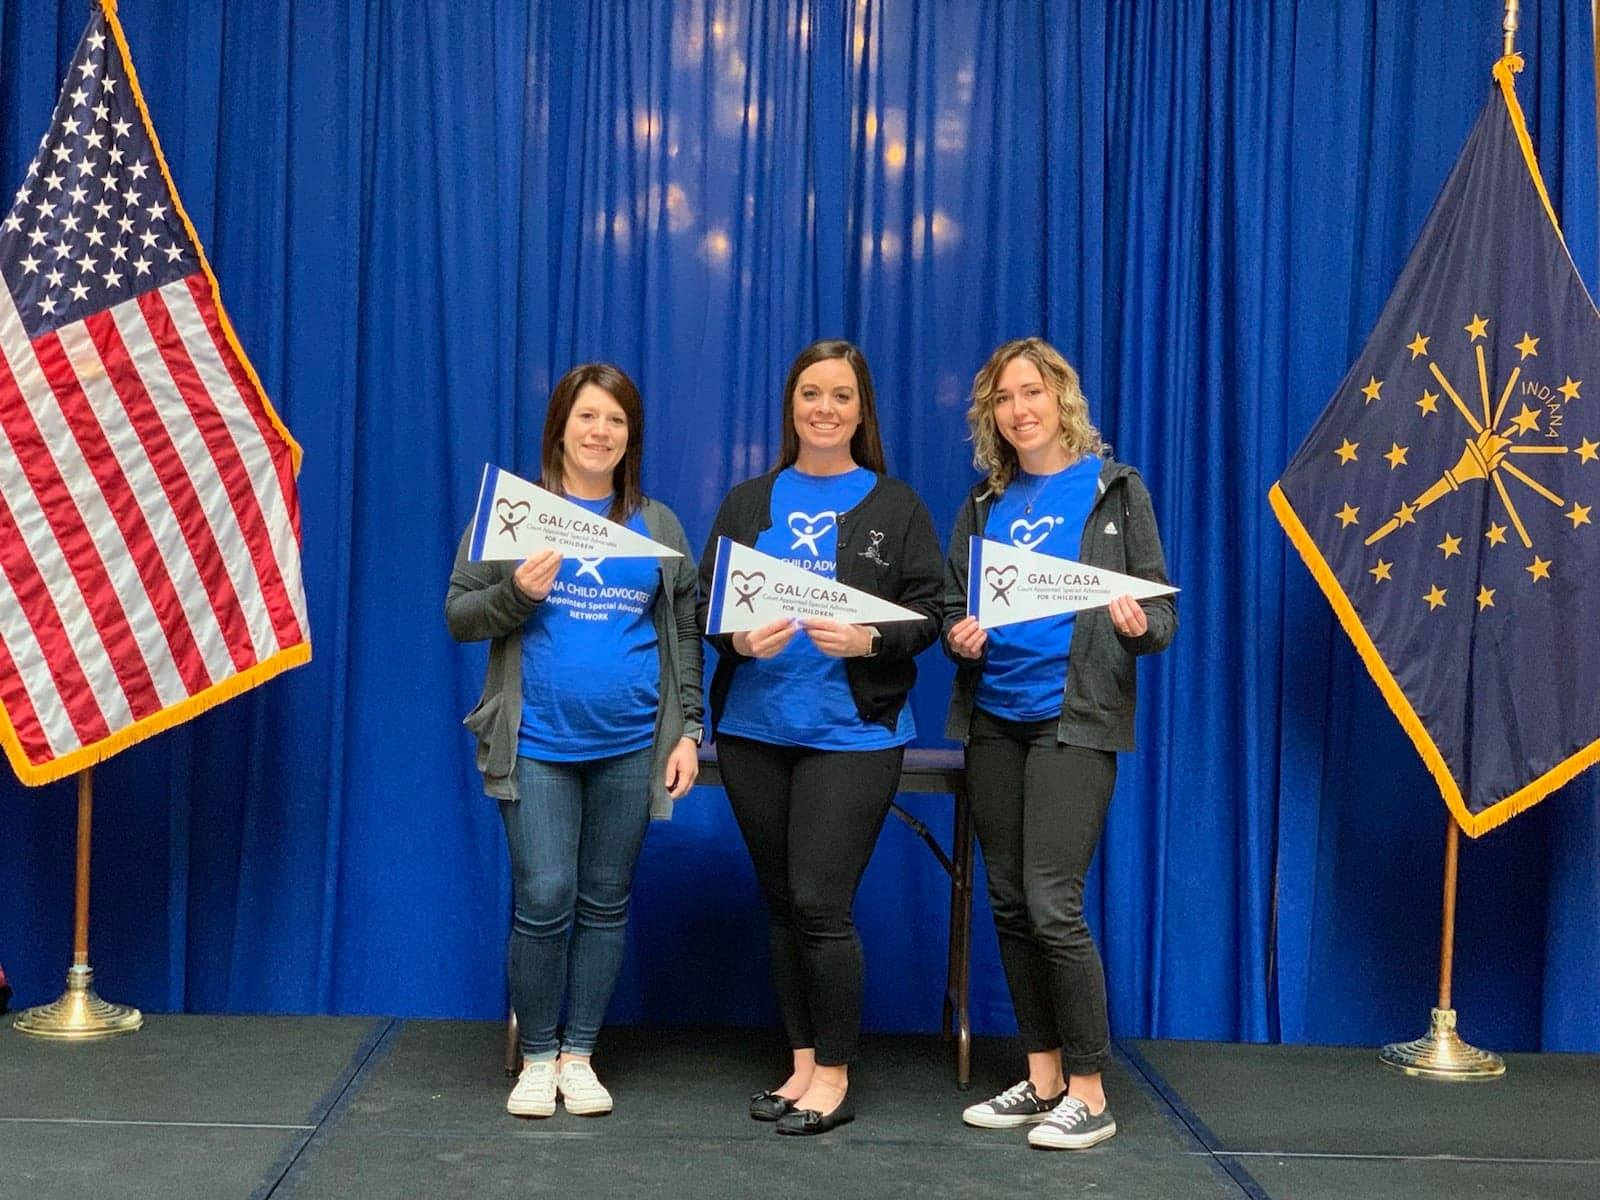 CASA staff members and volunteers attended CASA Day at the State House, an annual event aimed at bringing together volunteers for the nonprofit and state legislators. Pictured are Northeastern Indiana CASA staff members, Brooke, Kirby and Abby.